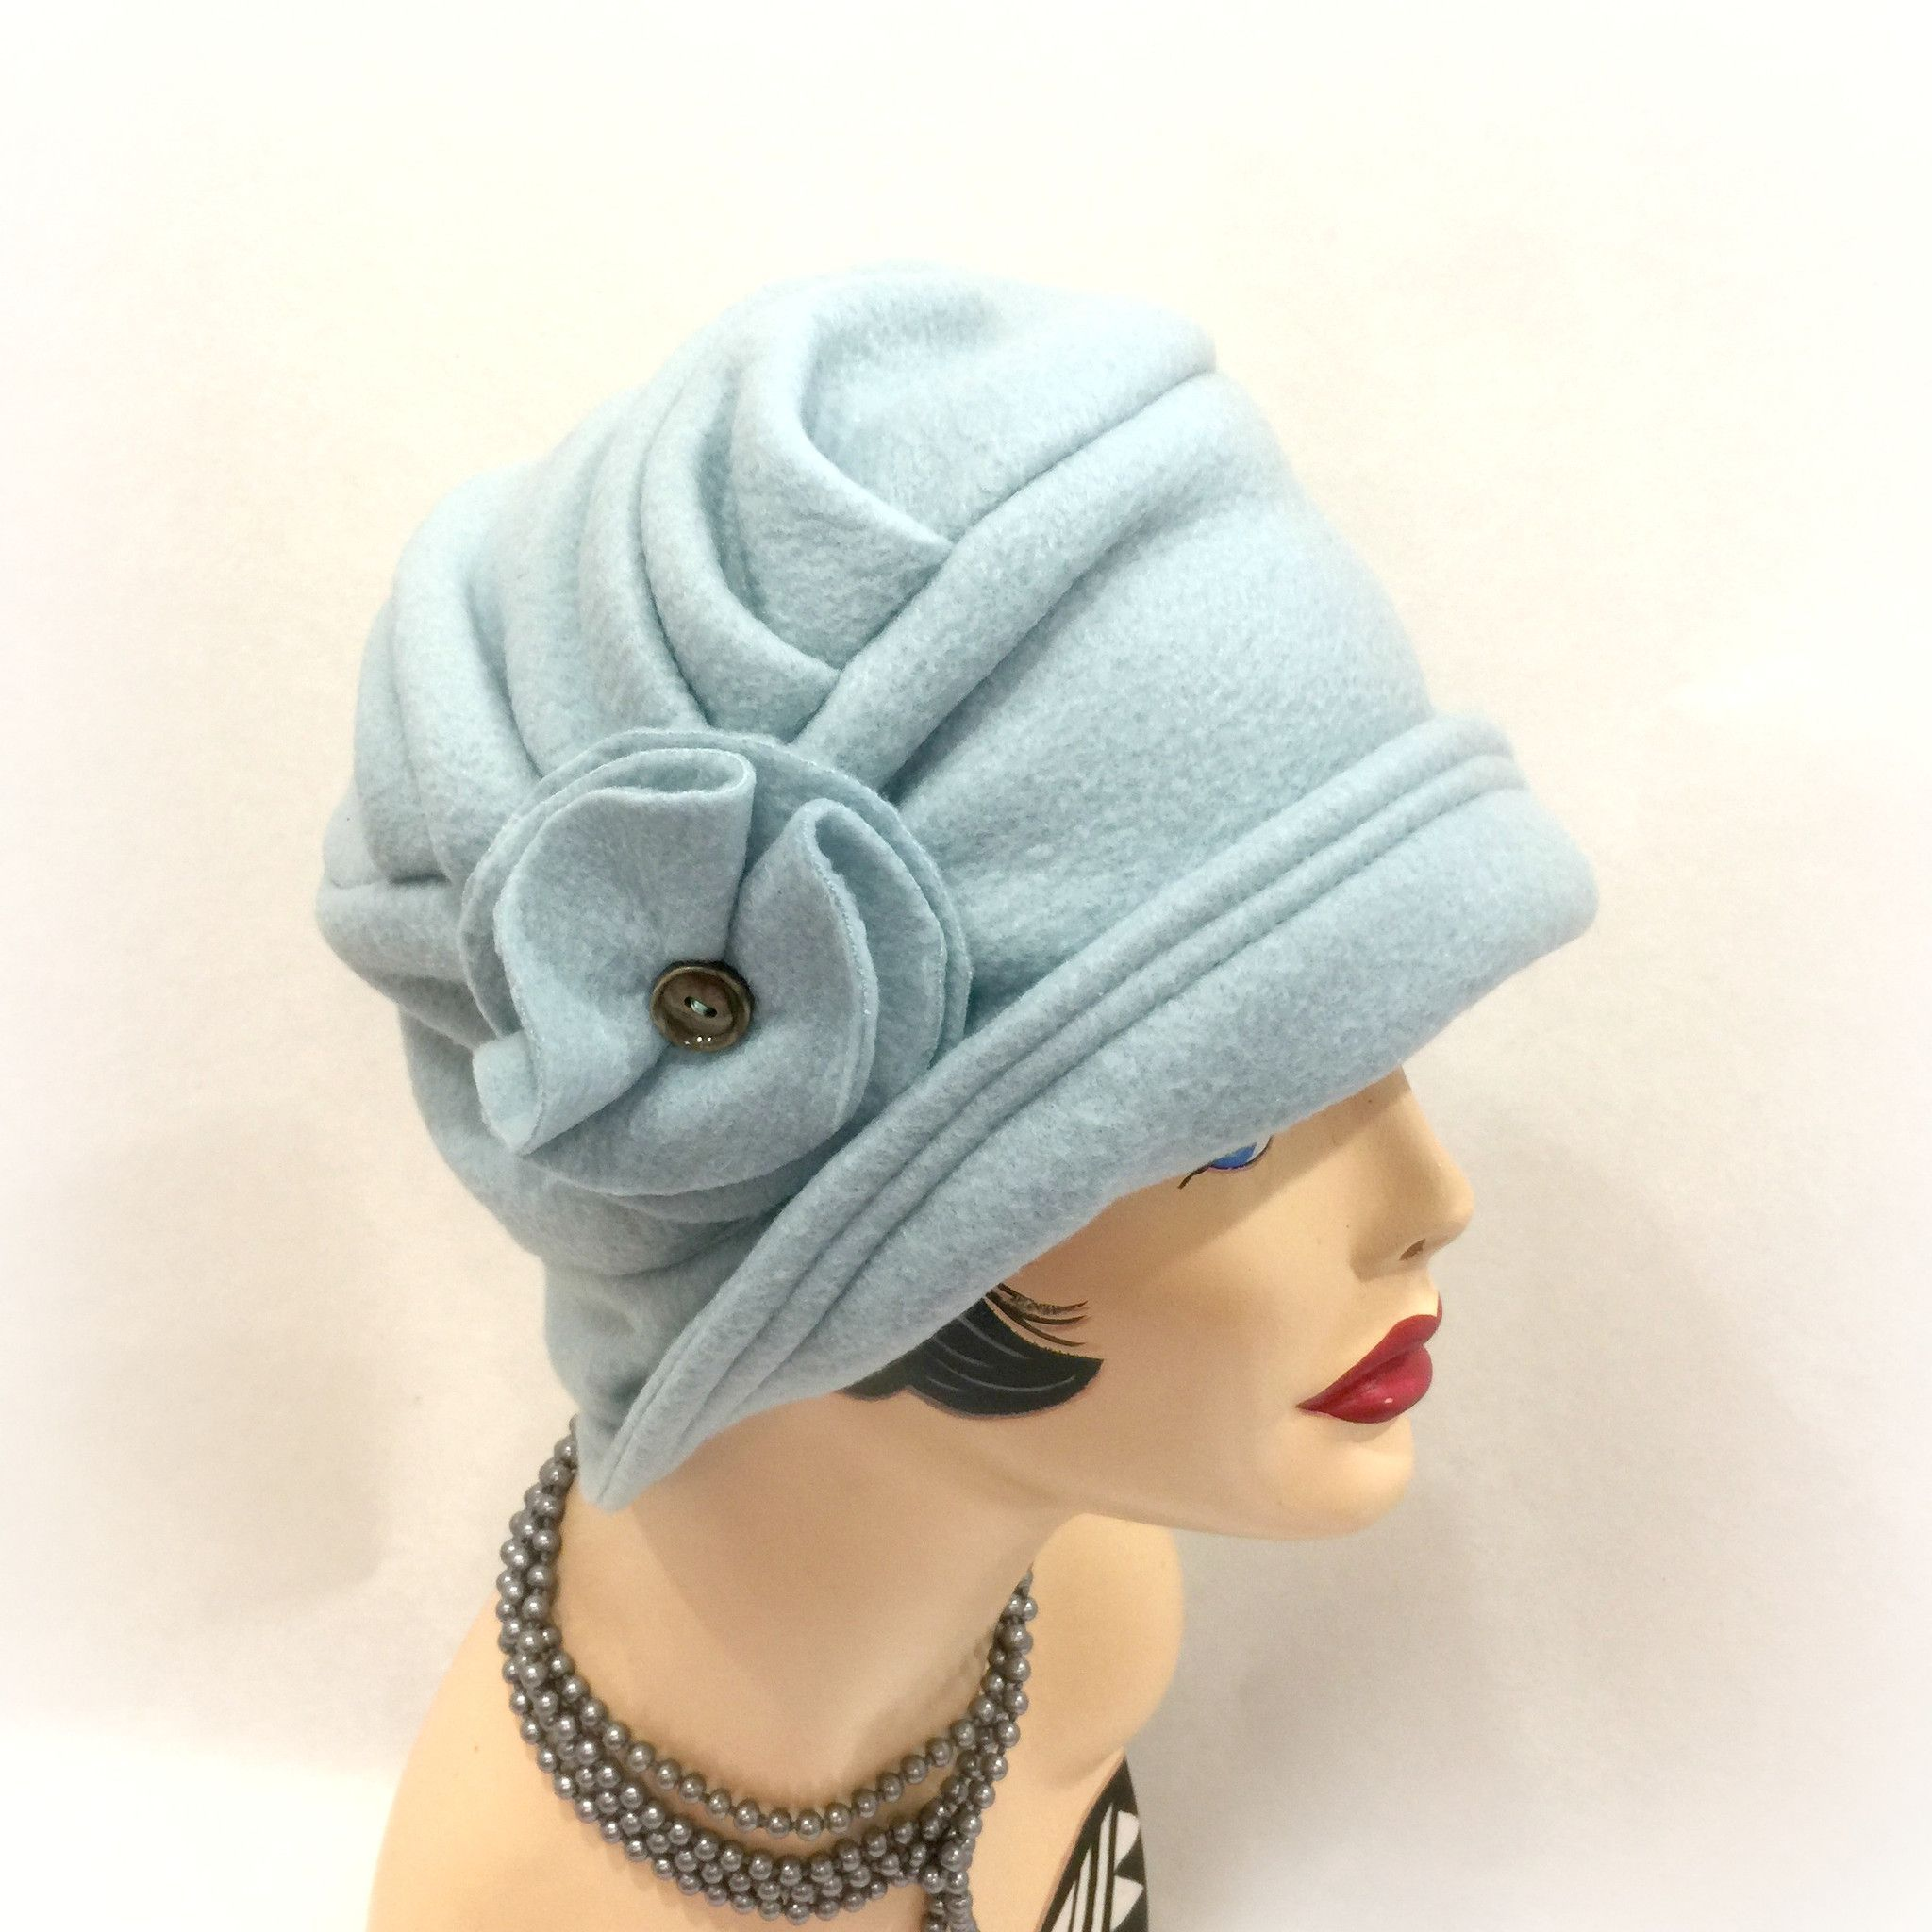 985d55547288a Flapper Style Cloche - Warm Winter Hats - Alice Cloche Hat - Downton Style  Hats - Fleece Hats The beautiful Alice this time show here handmade in a  duck egg ...